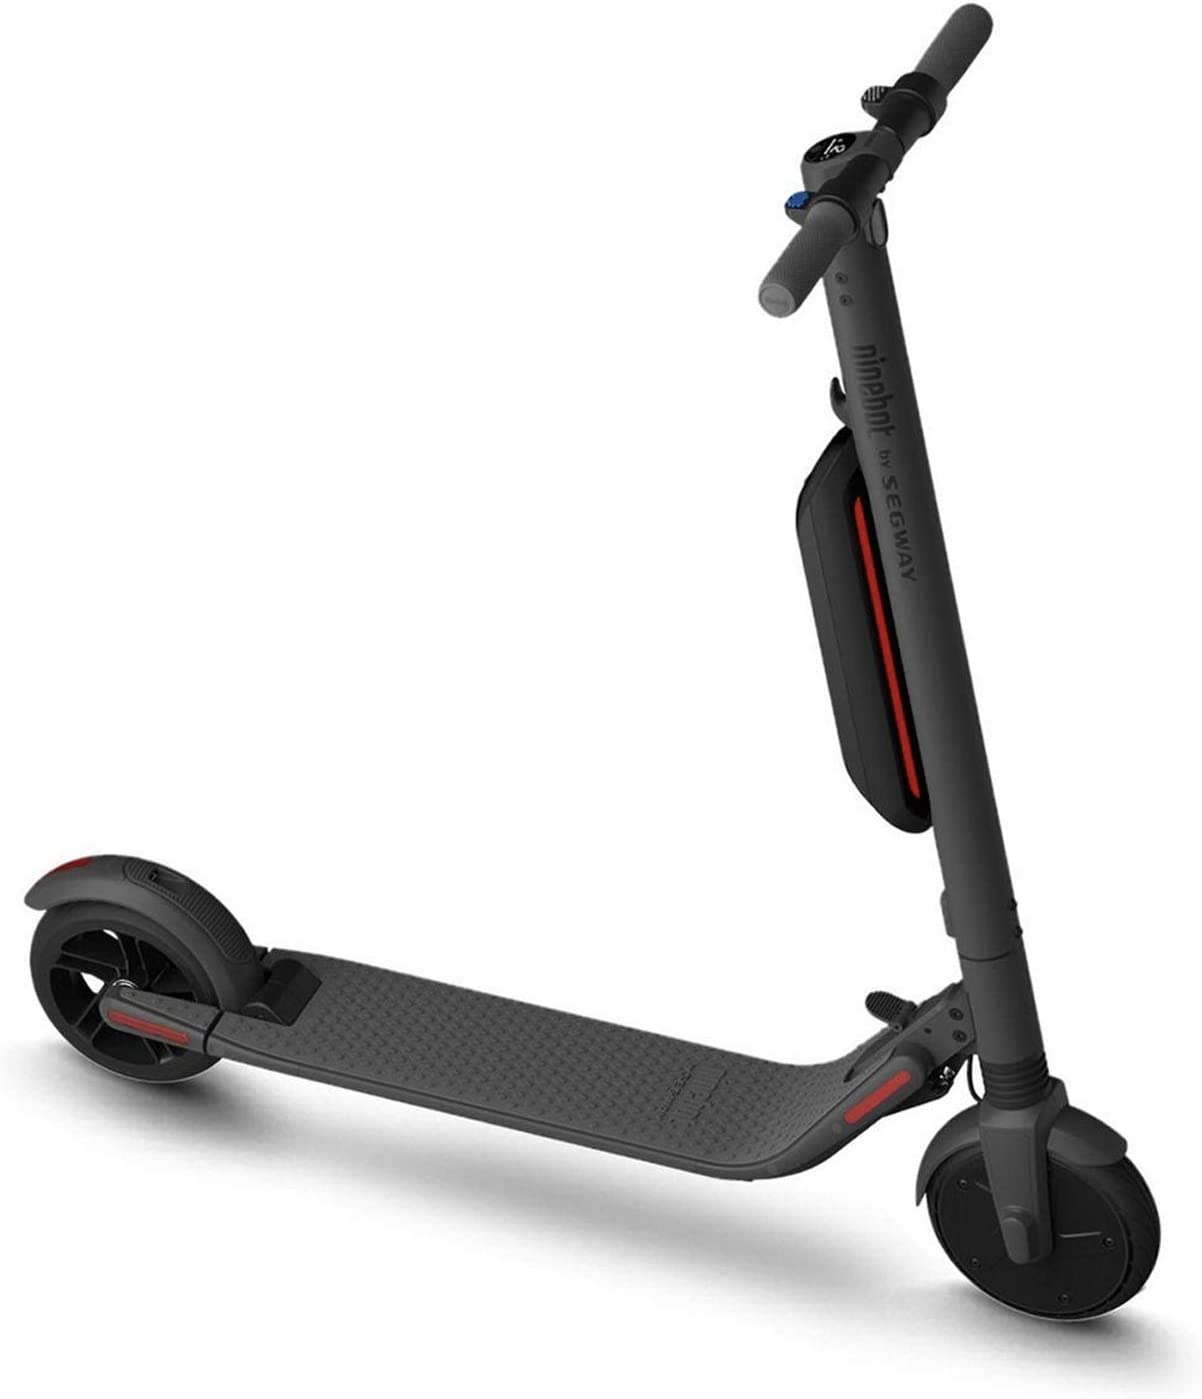 best electric scooter for climbing hills: Segway Ninebot ES4 Electric Kick Scooter